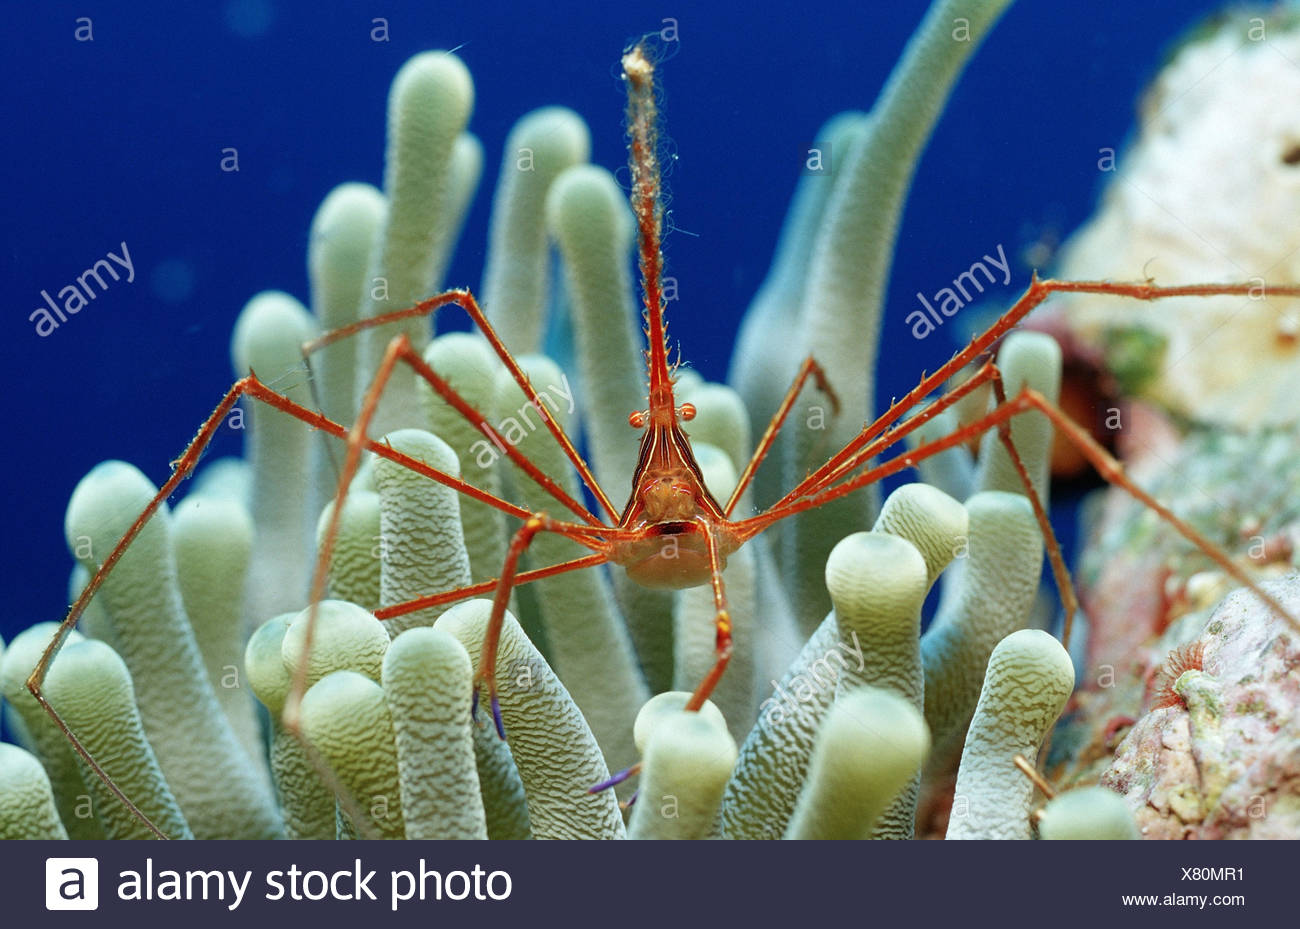 Spinning crab, Stenorhynchus seticornis, anemone, the Caribbean, Stock Photo